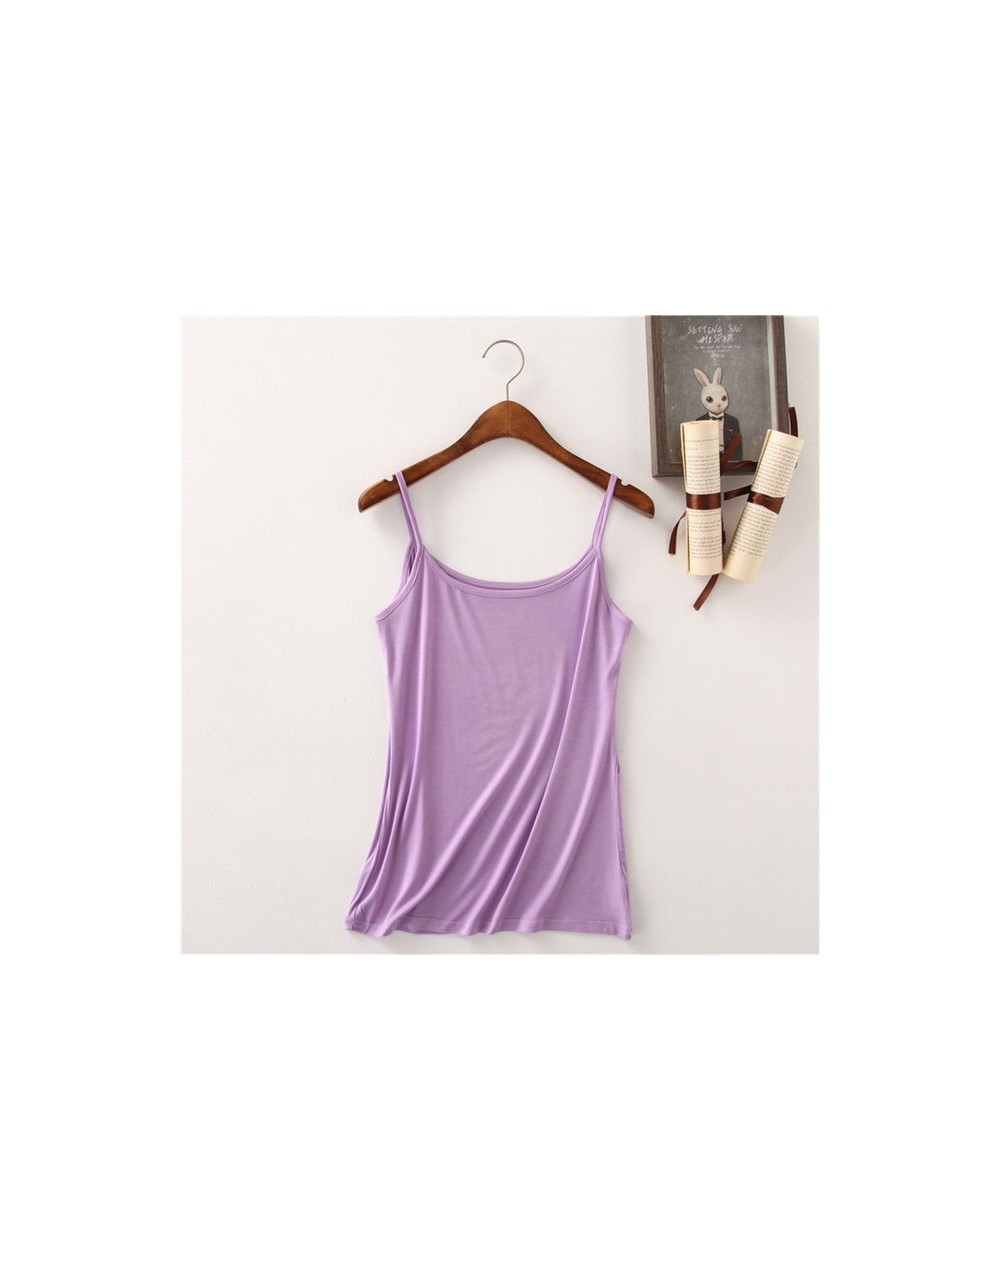 2018 modal Camis Top Summer Style Women Tops Sexy Camisoles For Ladies Black Strap camis BTL119 - light purple - 4T3800144932-5